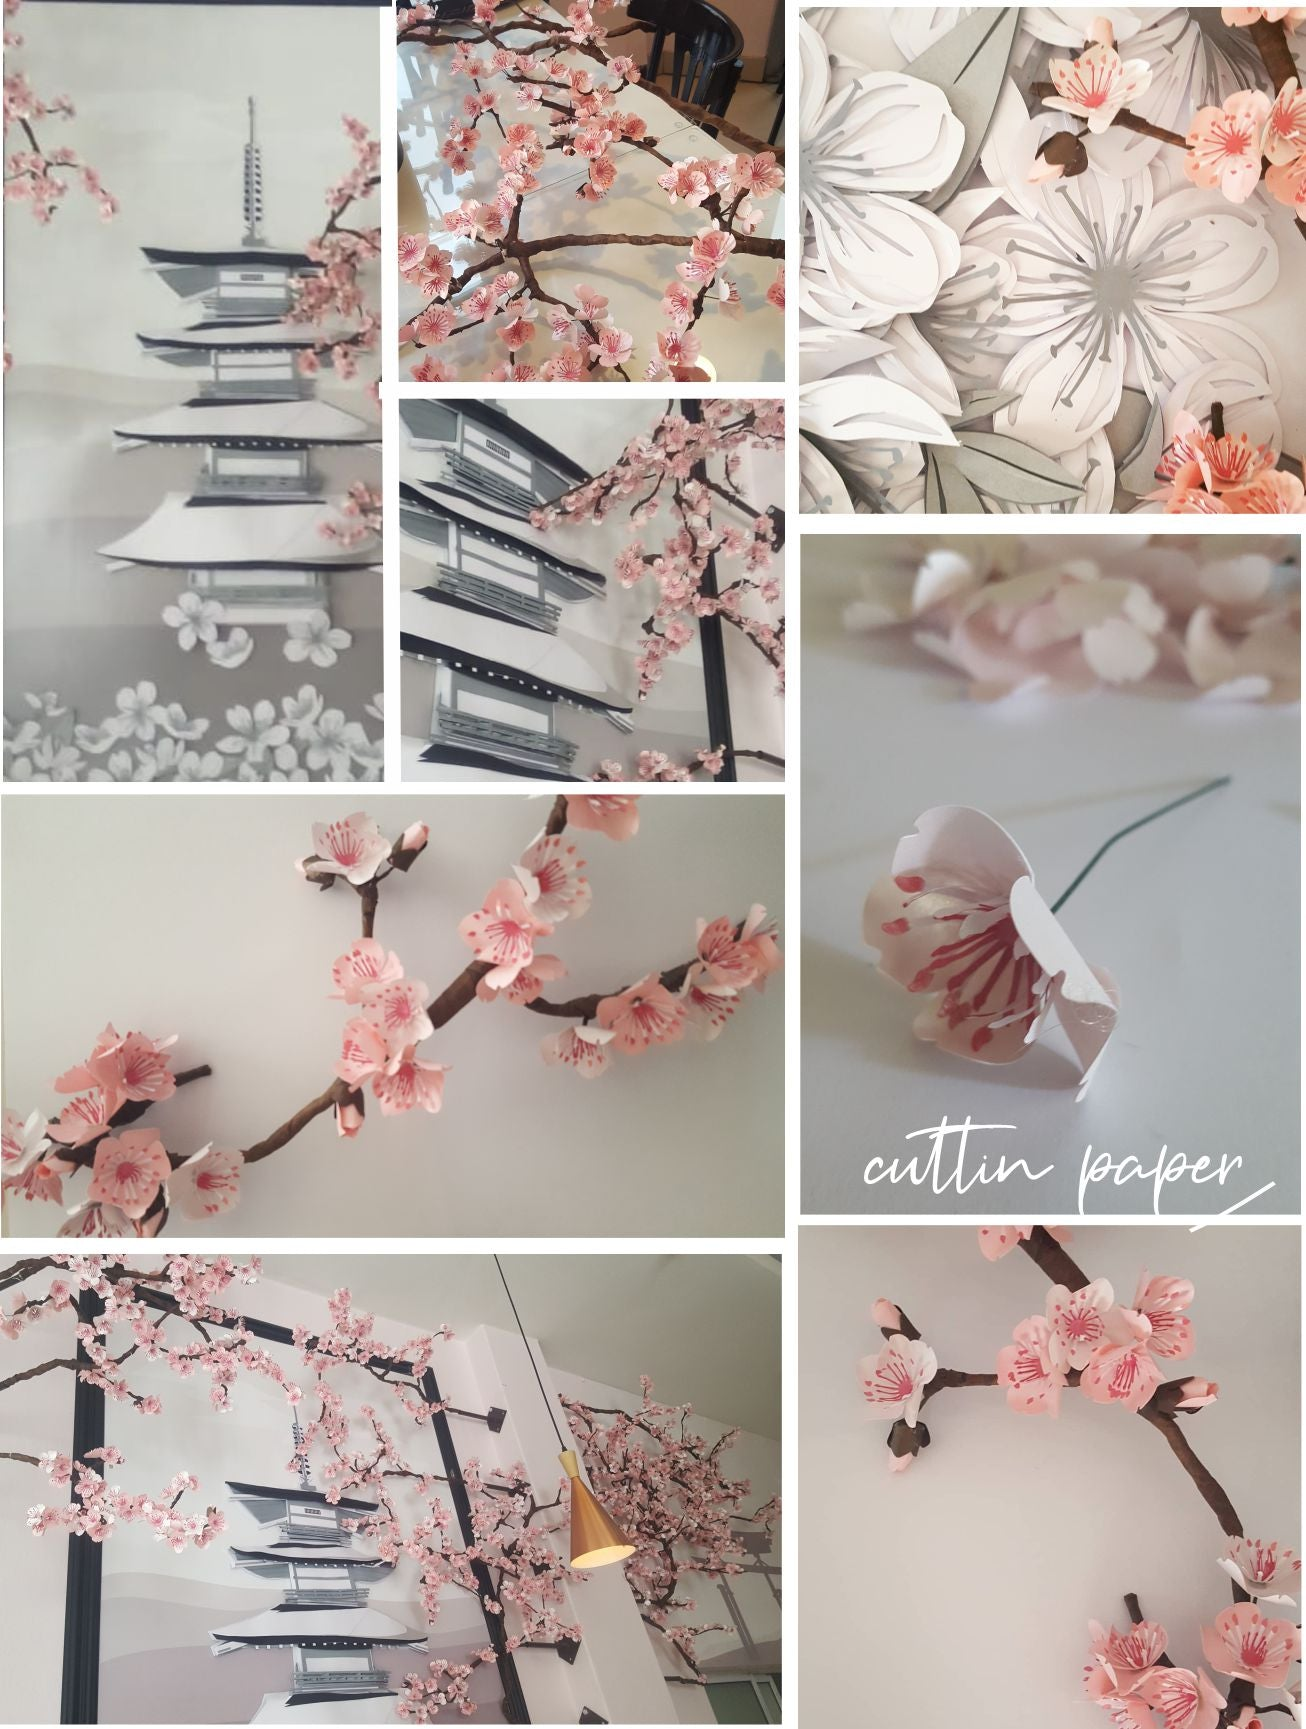 Yamato Japanese Restaurant Illovo - paper cherry blossoms and 3D layered wall art